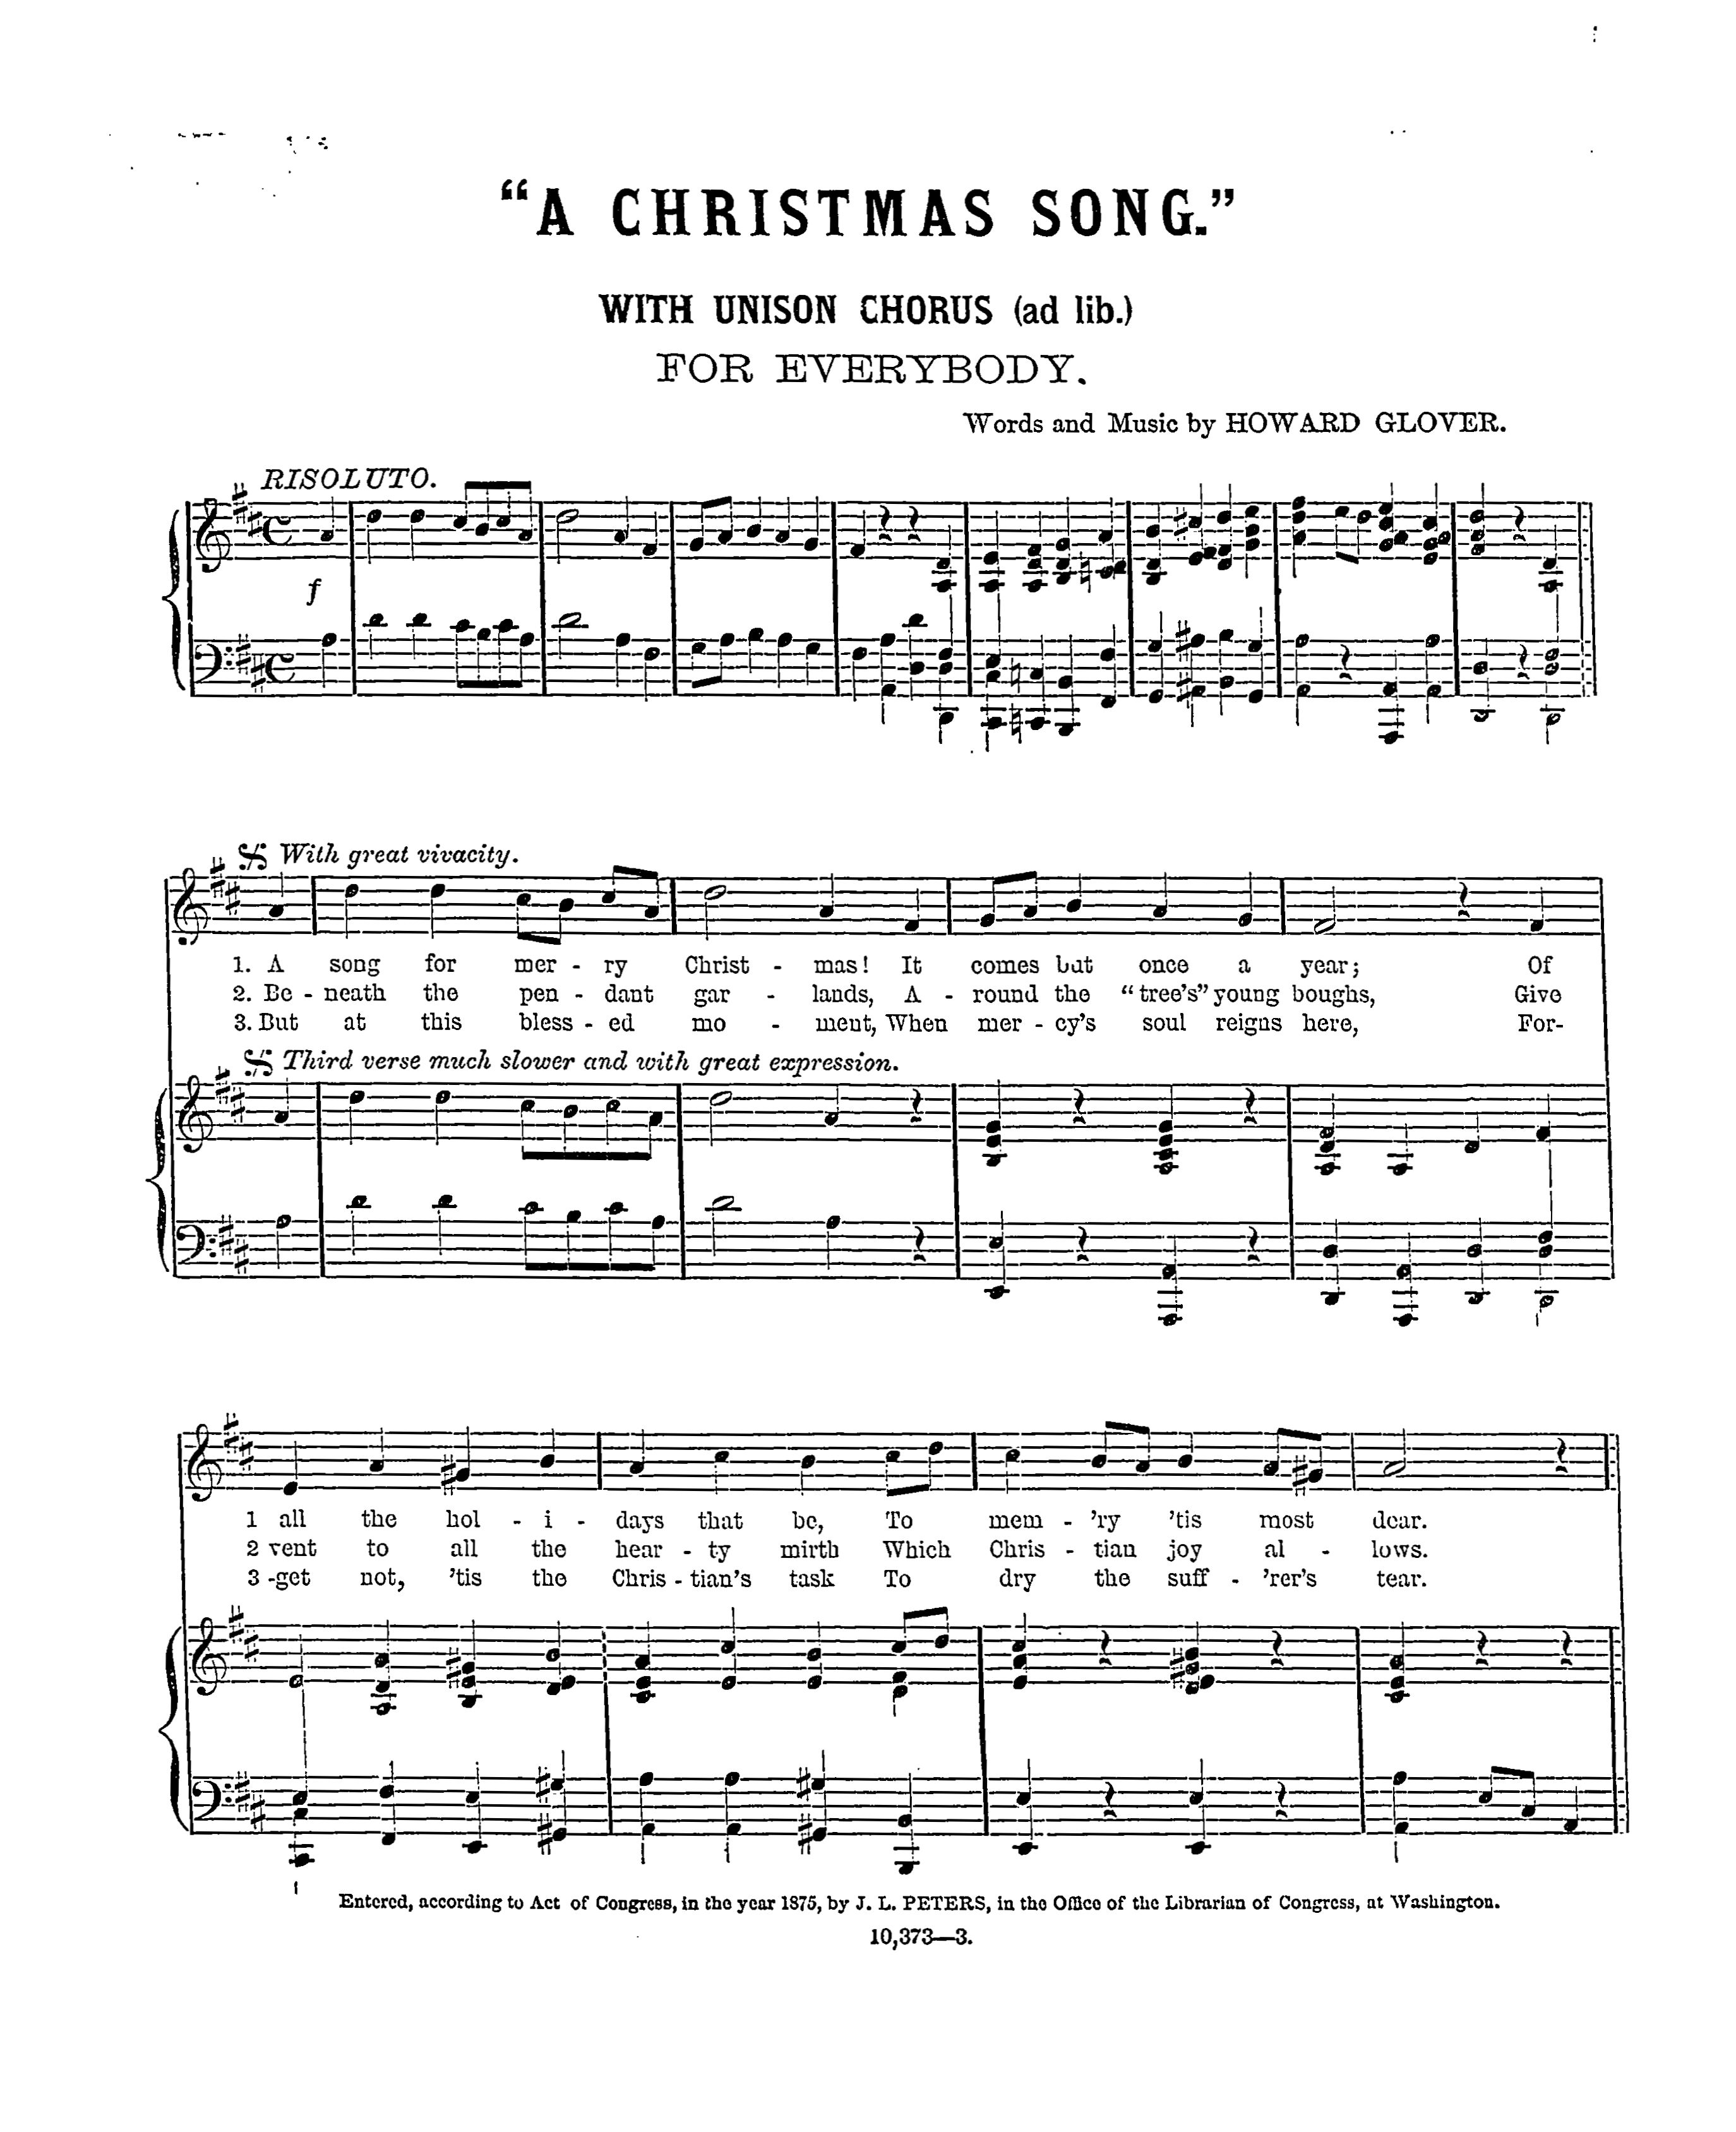 A Christmas Song by Howard Glover